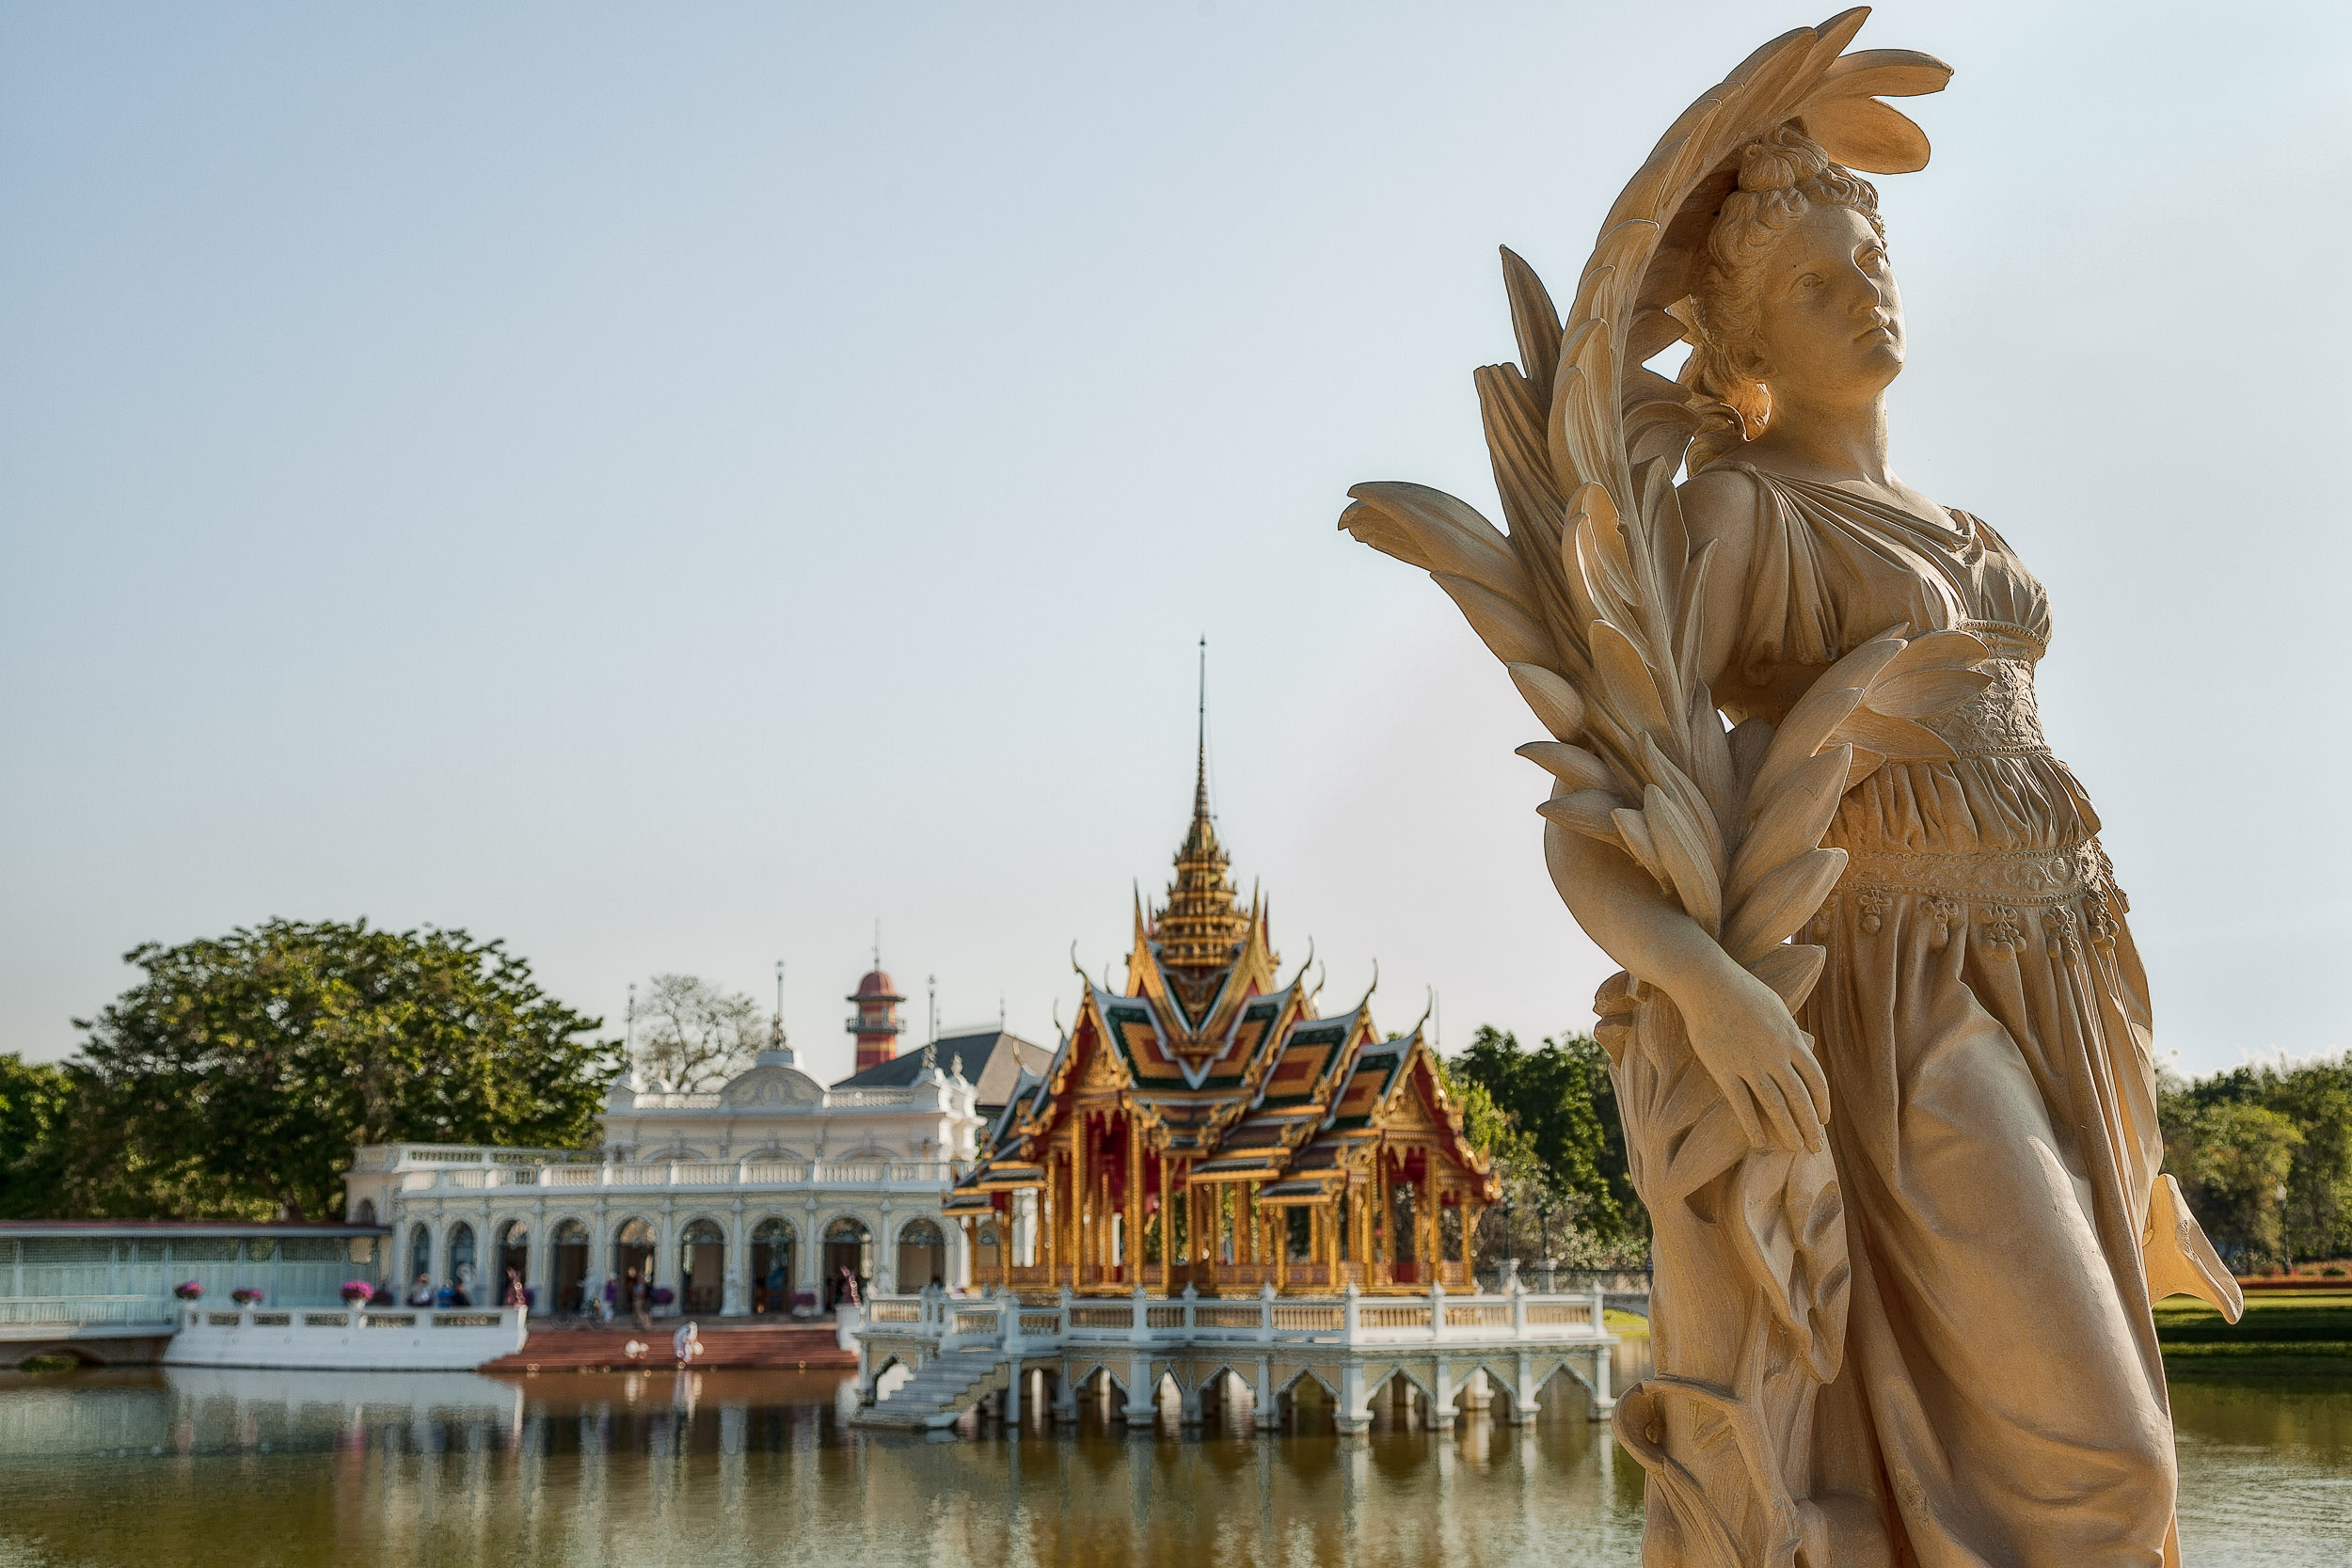 A graceful  European statue  in front of a classic T hai-style pavillion  at  Bang Pa In  near  Ayutthaya, Thailand .